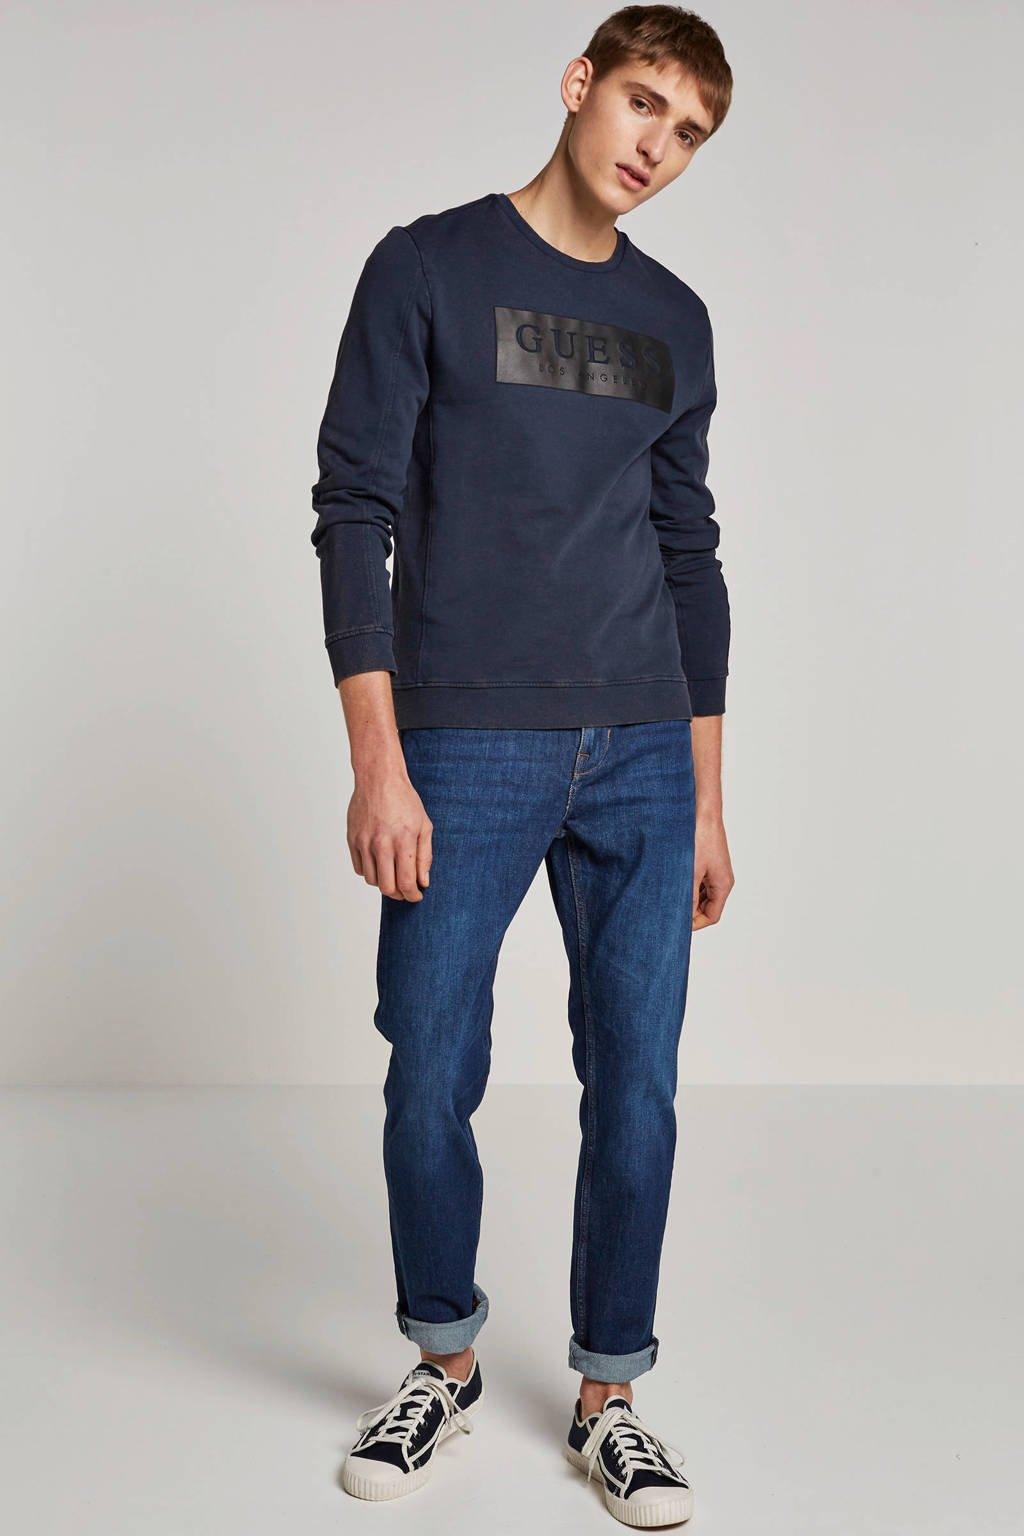 GUESS Sweater, Donkerblauw